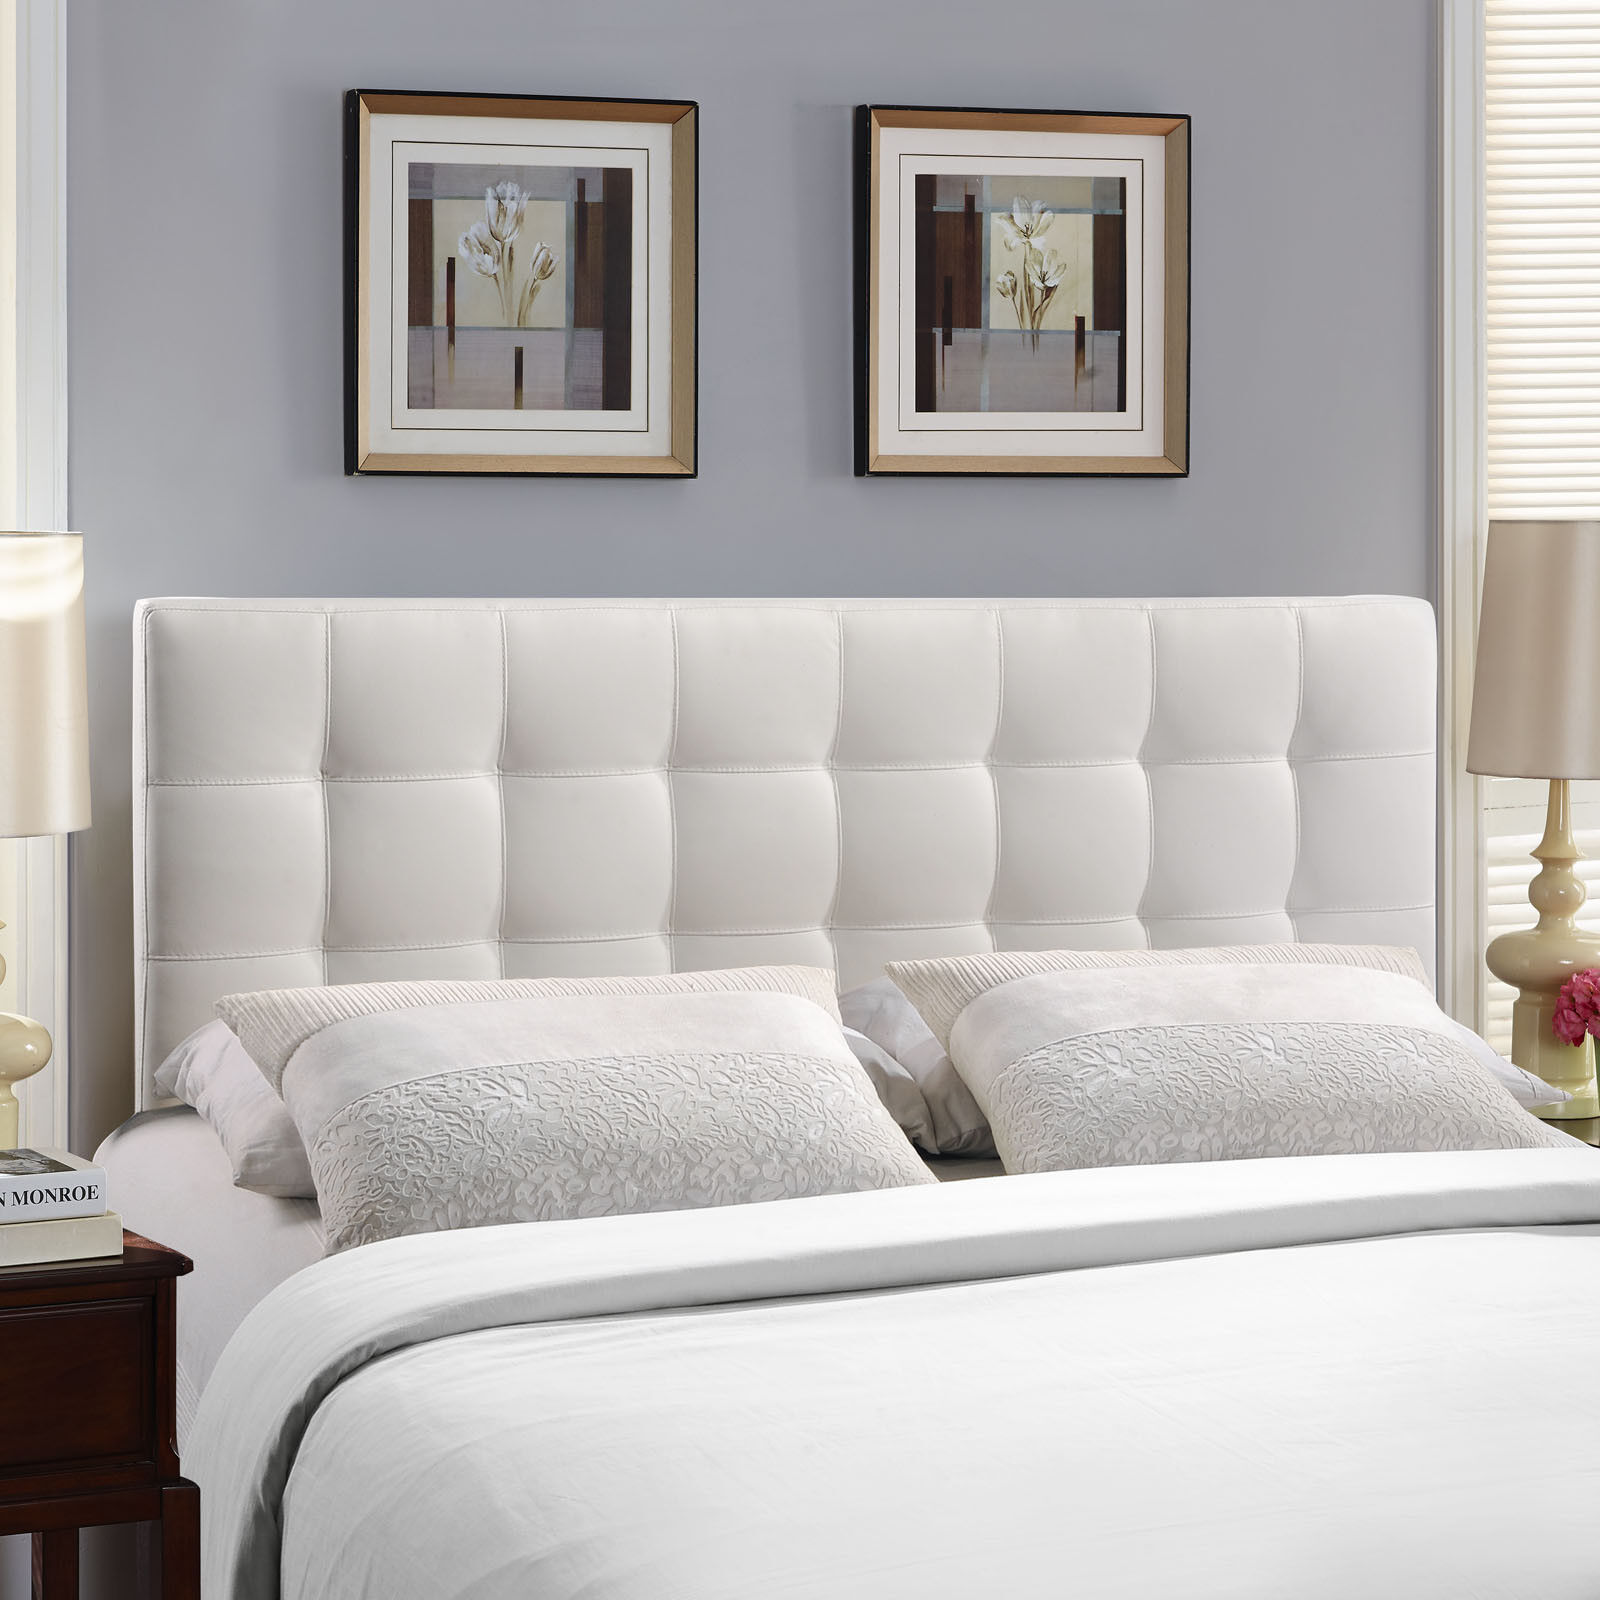 Tufted Upholstered Faux Leather Square King Size Headboard In White 848387019334 Ebay